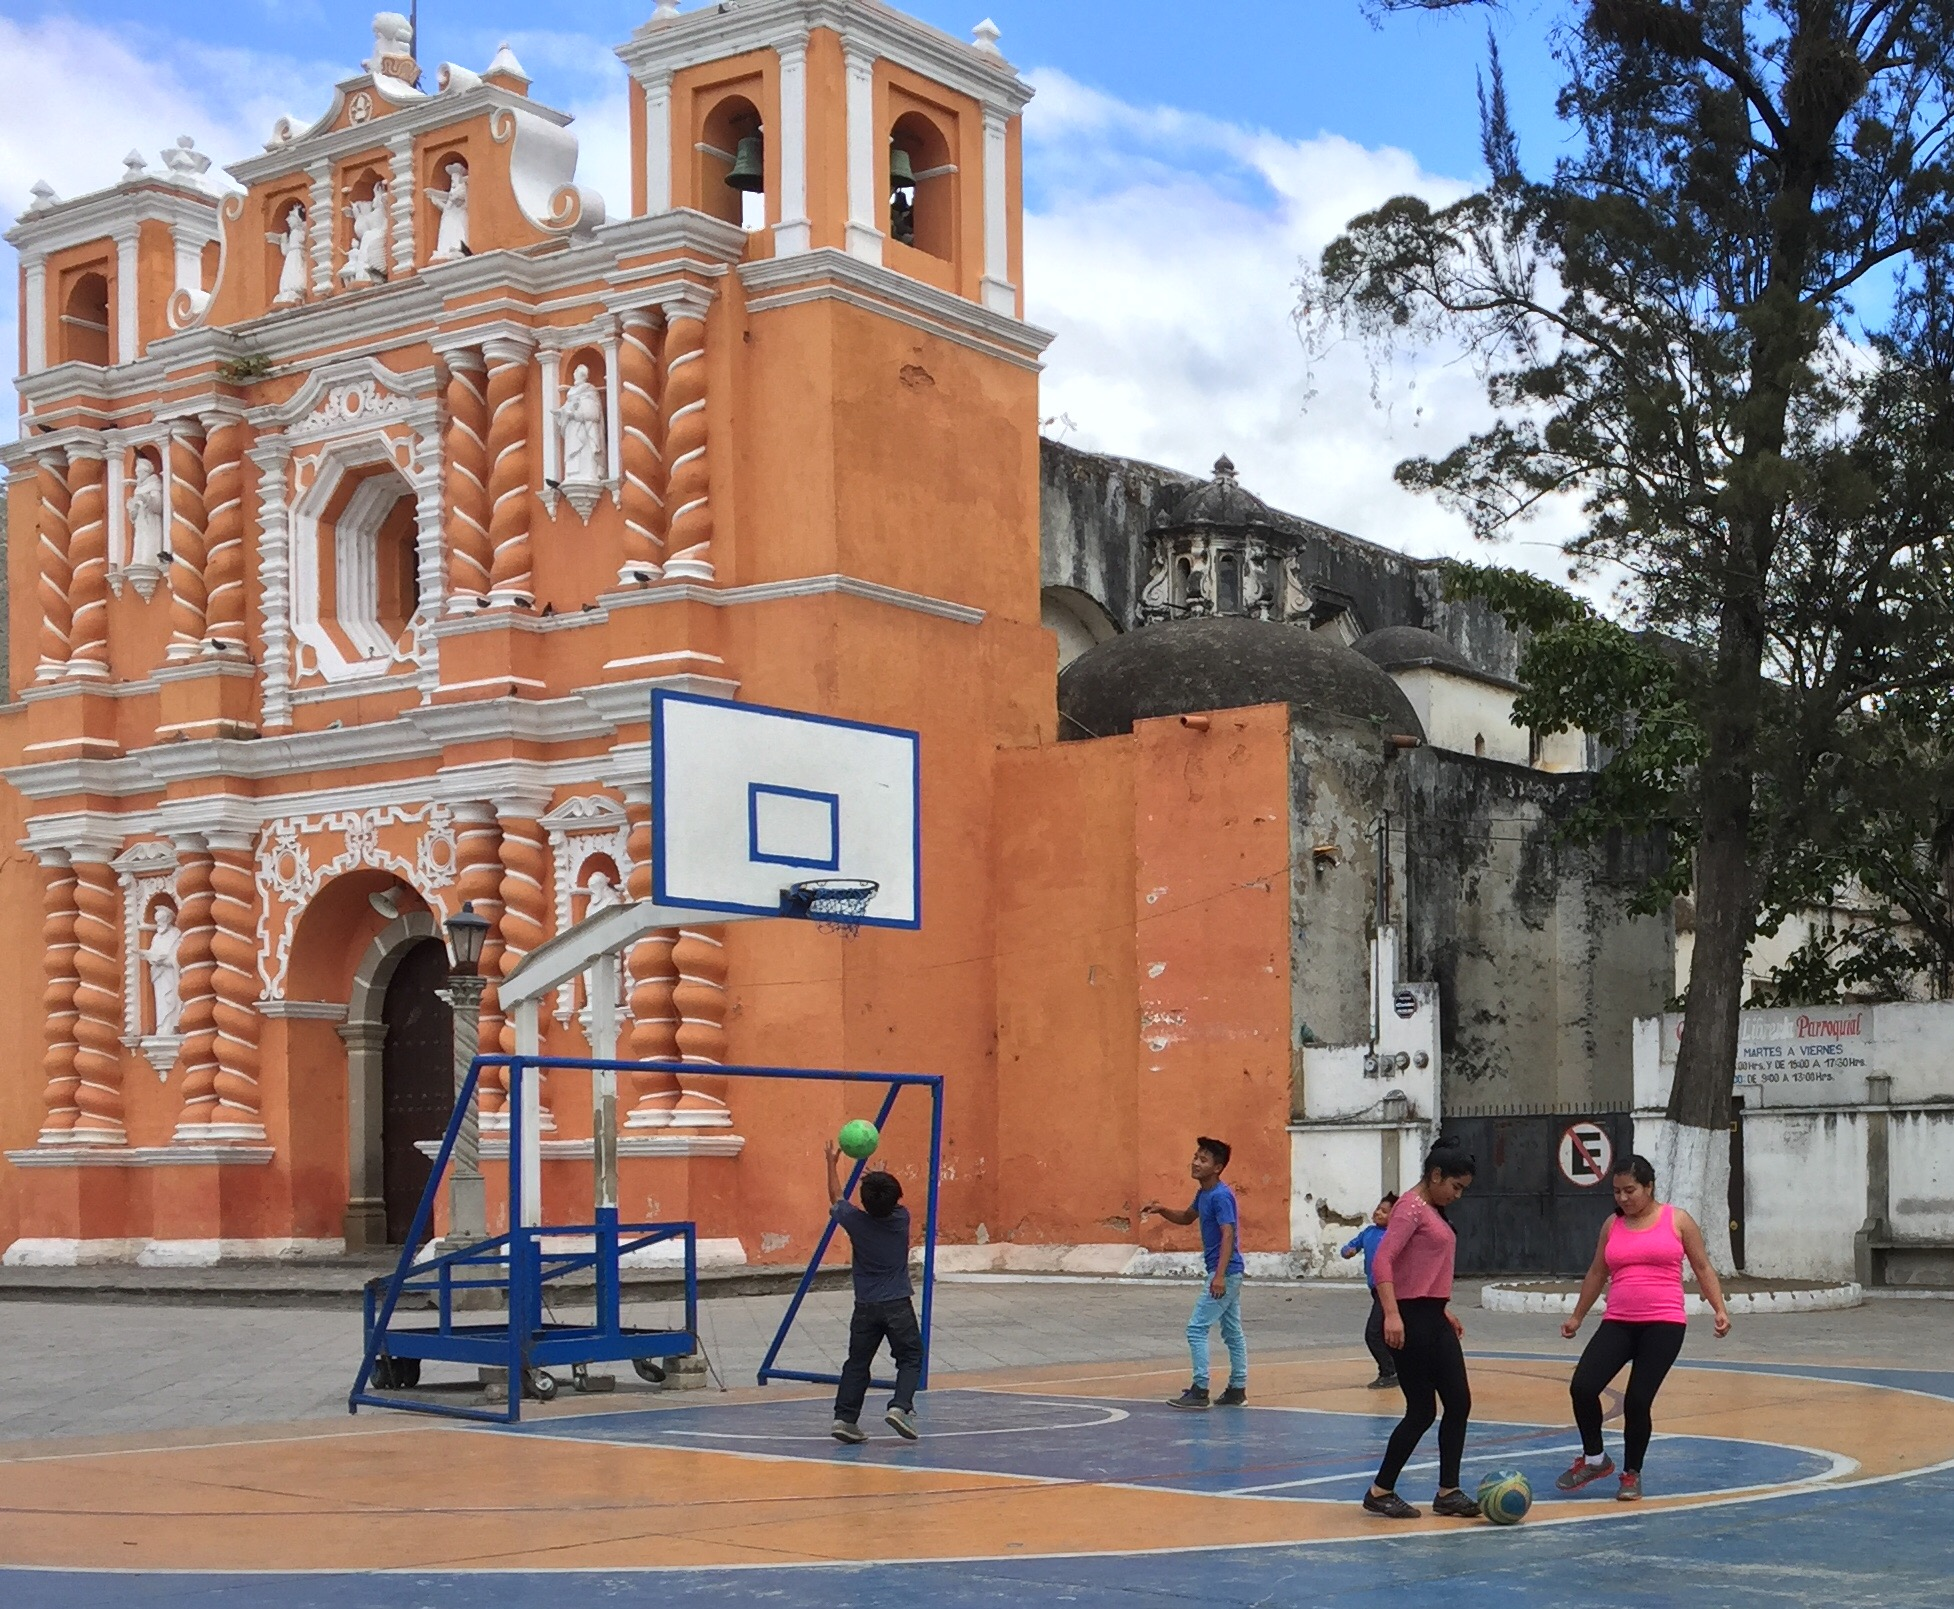 Kids playing basketball in front of the old convent in Antigua, Guatemala.